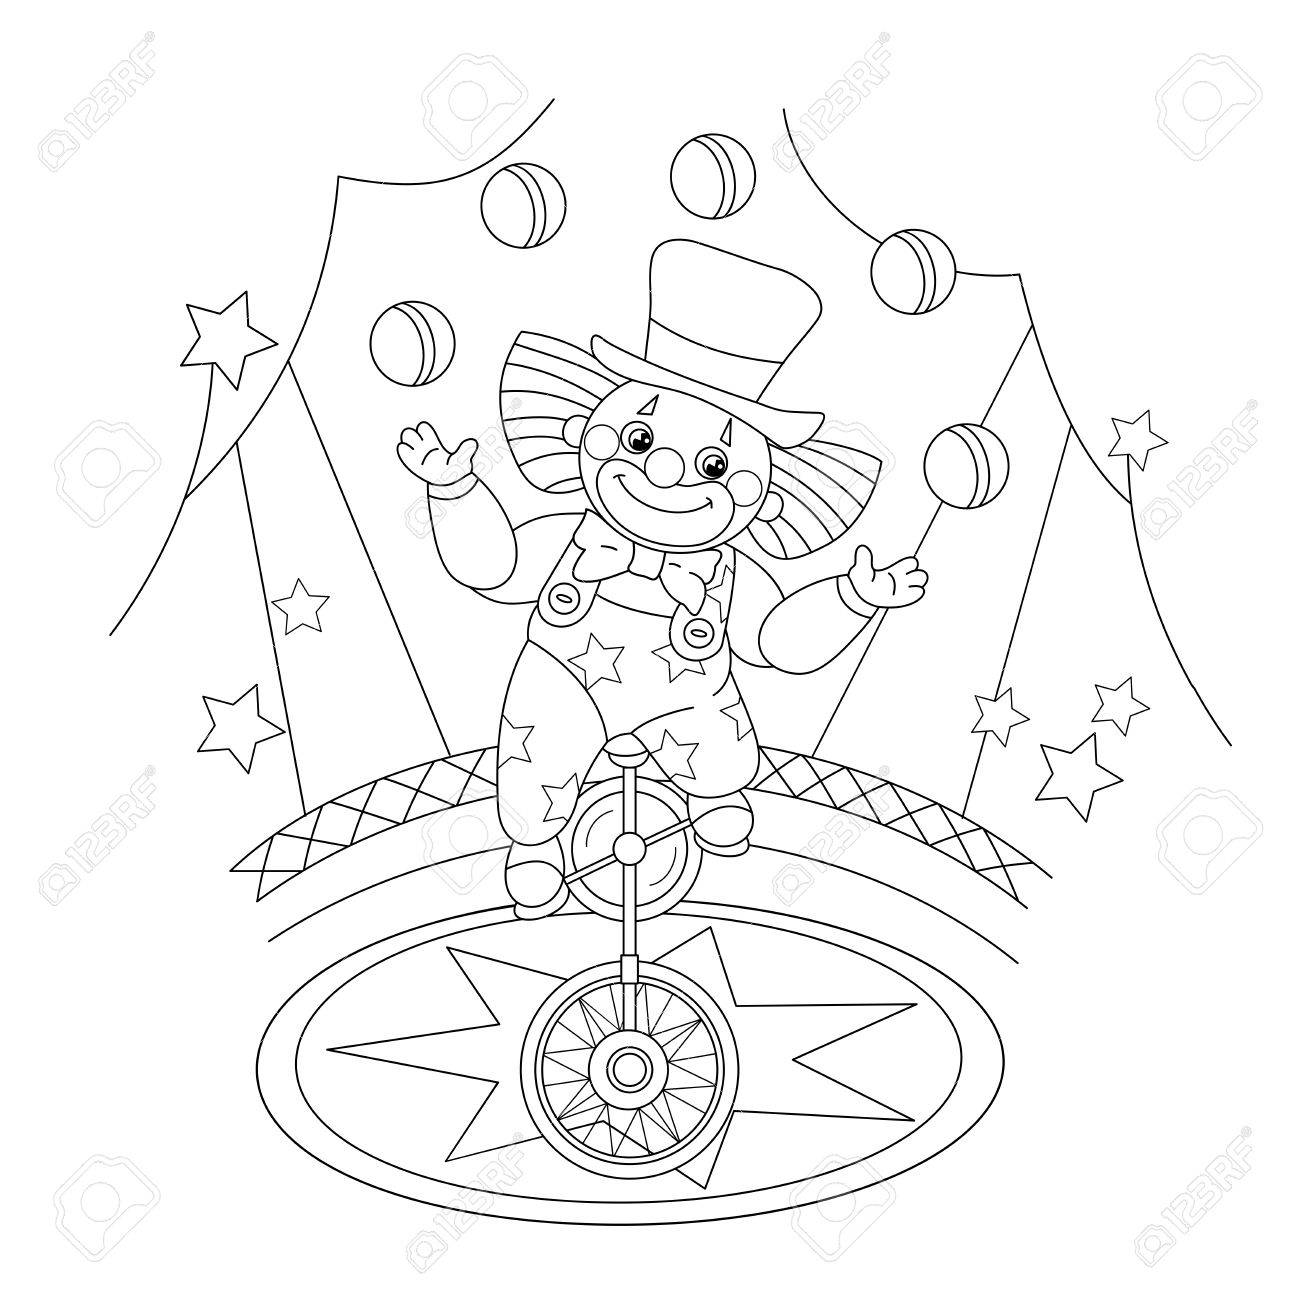 Coloring Page Outline Of A Funny Clown Juggling Balls. Coloring ...